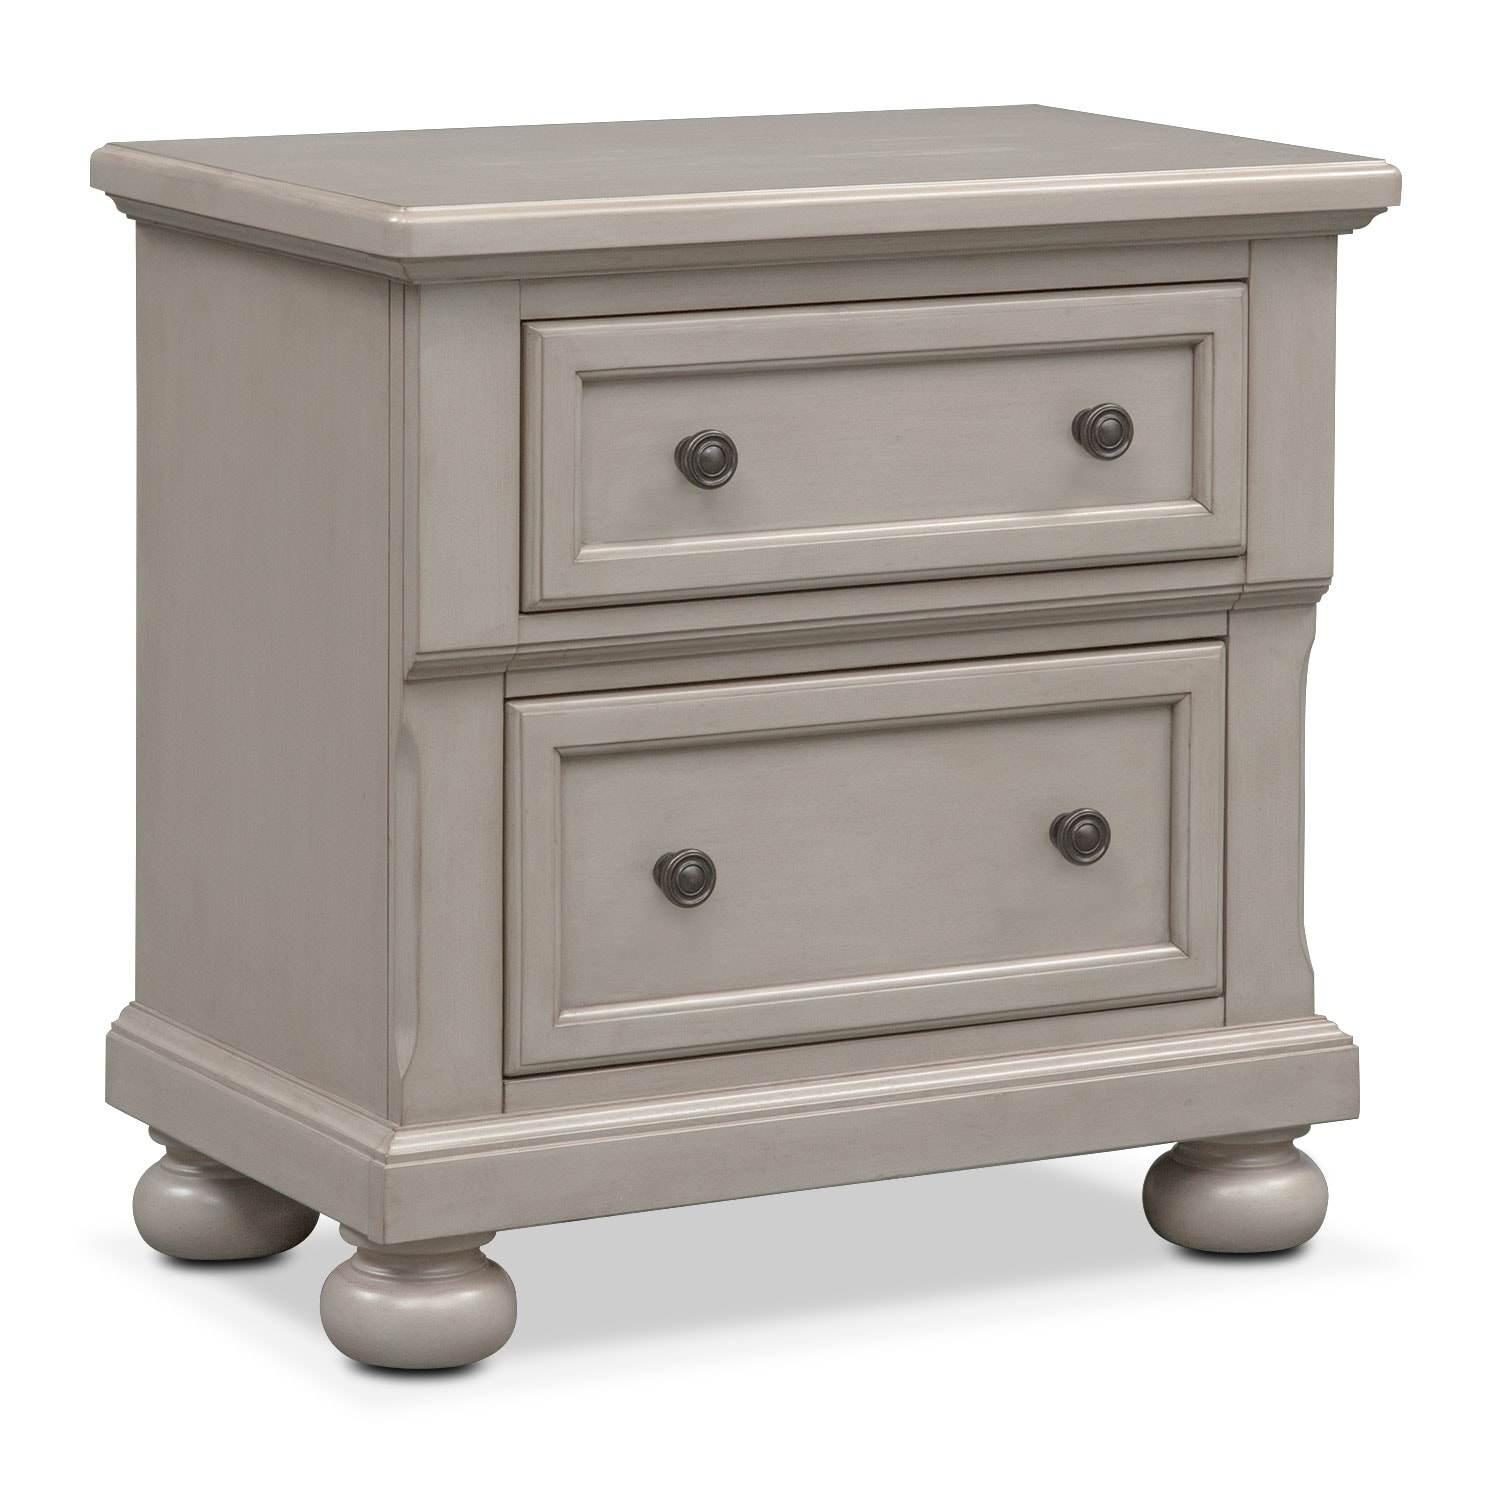 Bedroom Furniture - Hanover Nightstand - Gray